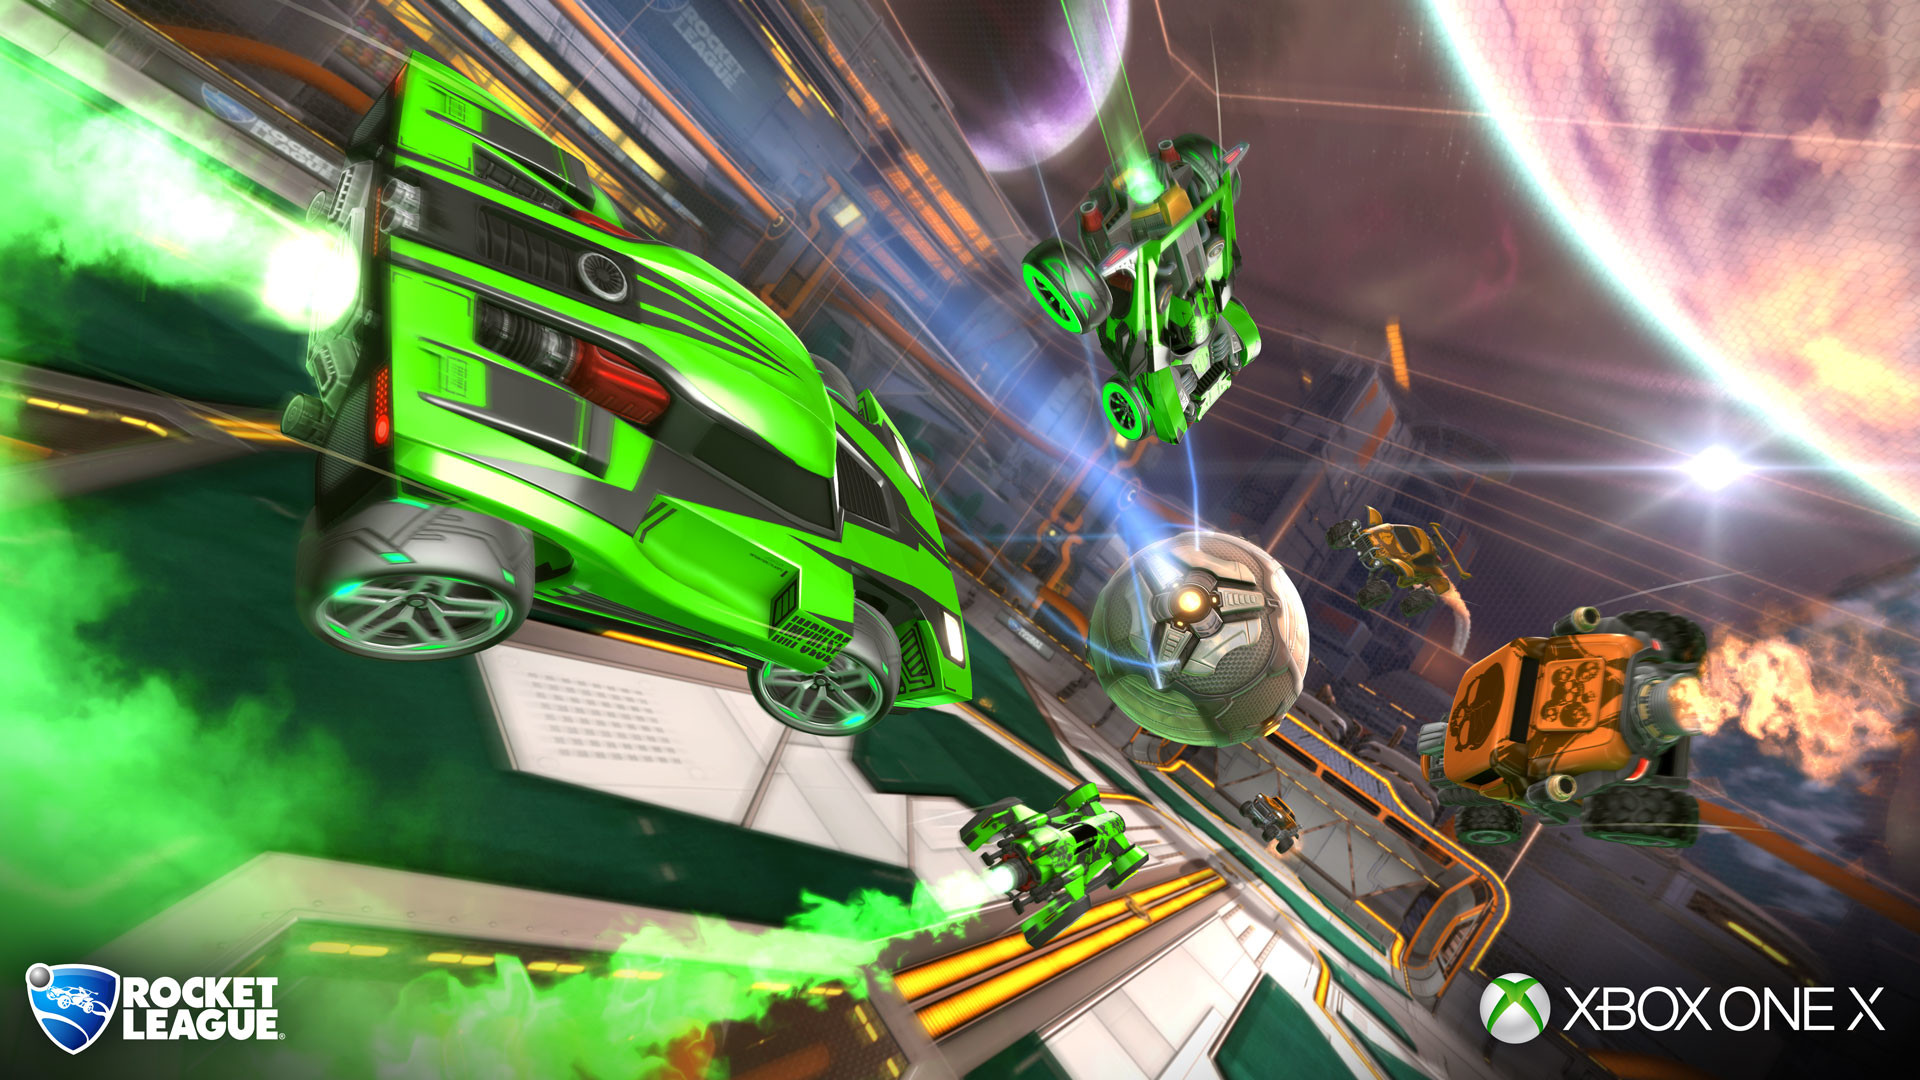 Rocket League is now Xbox One X enhanced - Neowin